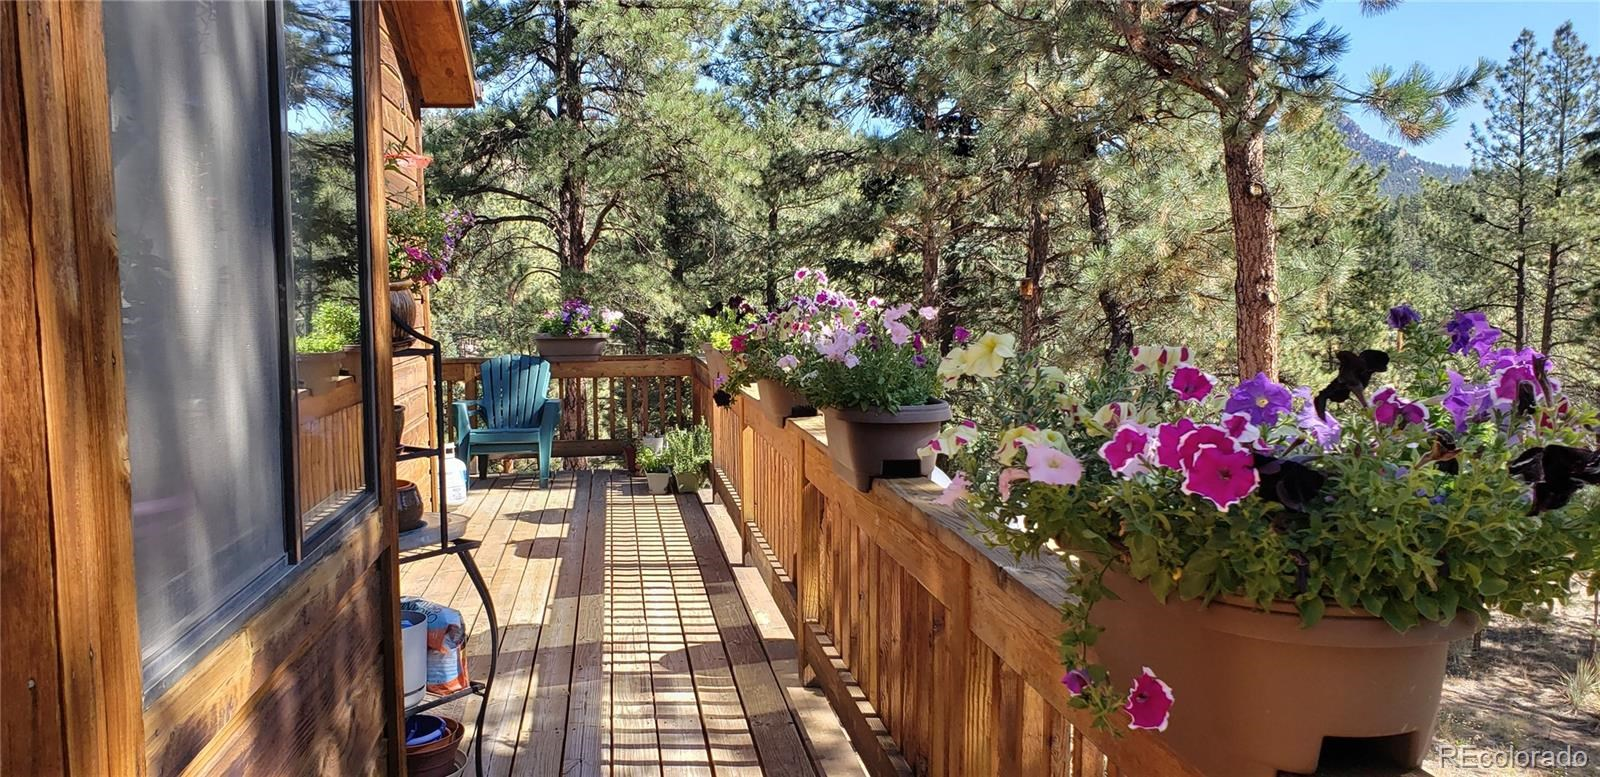 MLS# 9494627 - 2 - 16456 Ouray Road W , Pine, CO 80470